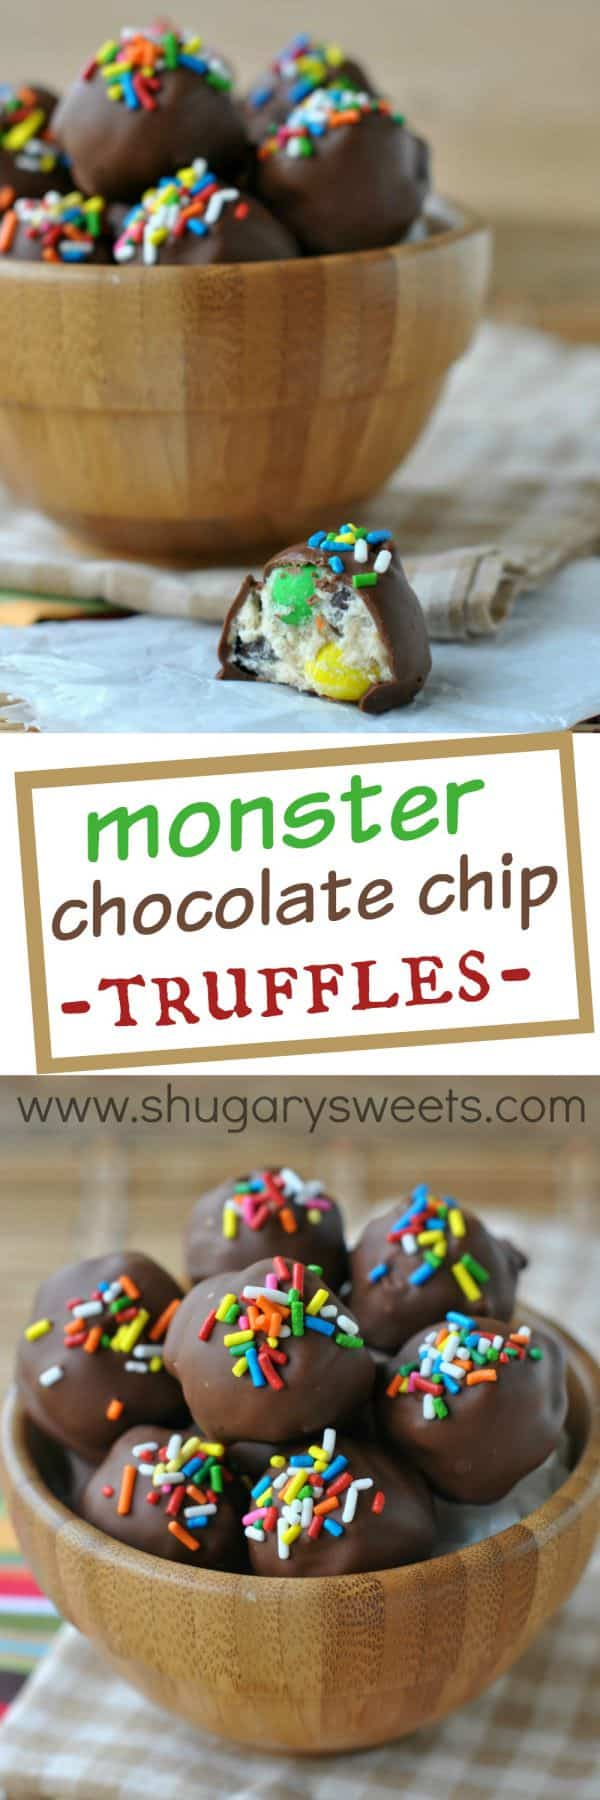 Monster cookie dough truffles: delicious, easy bites of monster cookie dough (egg-free). No bake summer dessert!